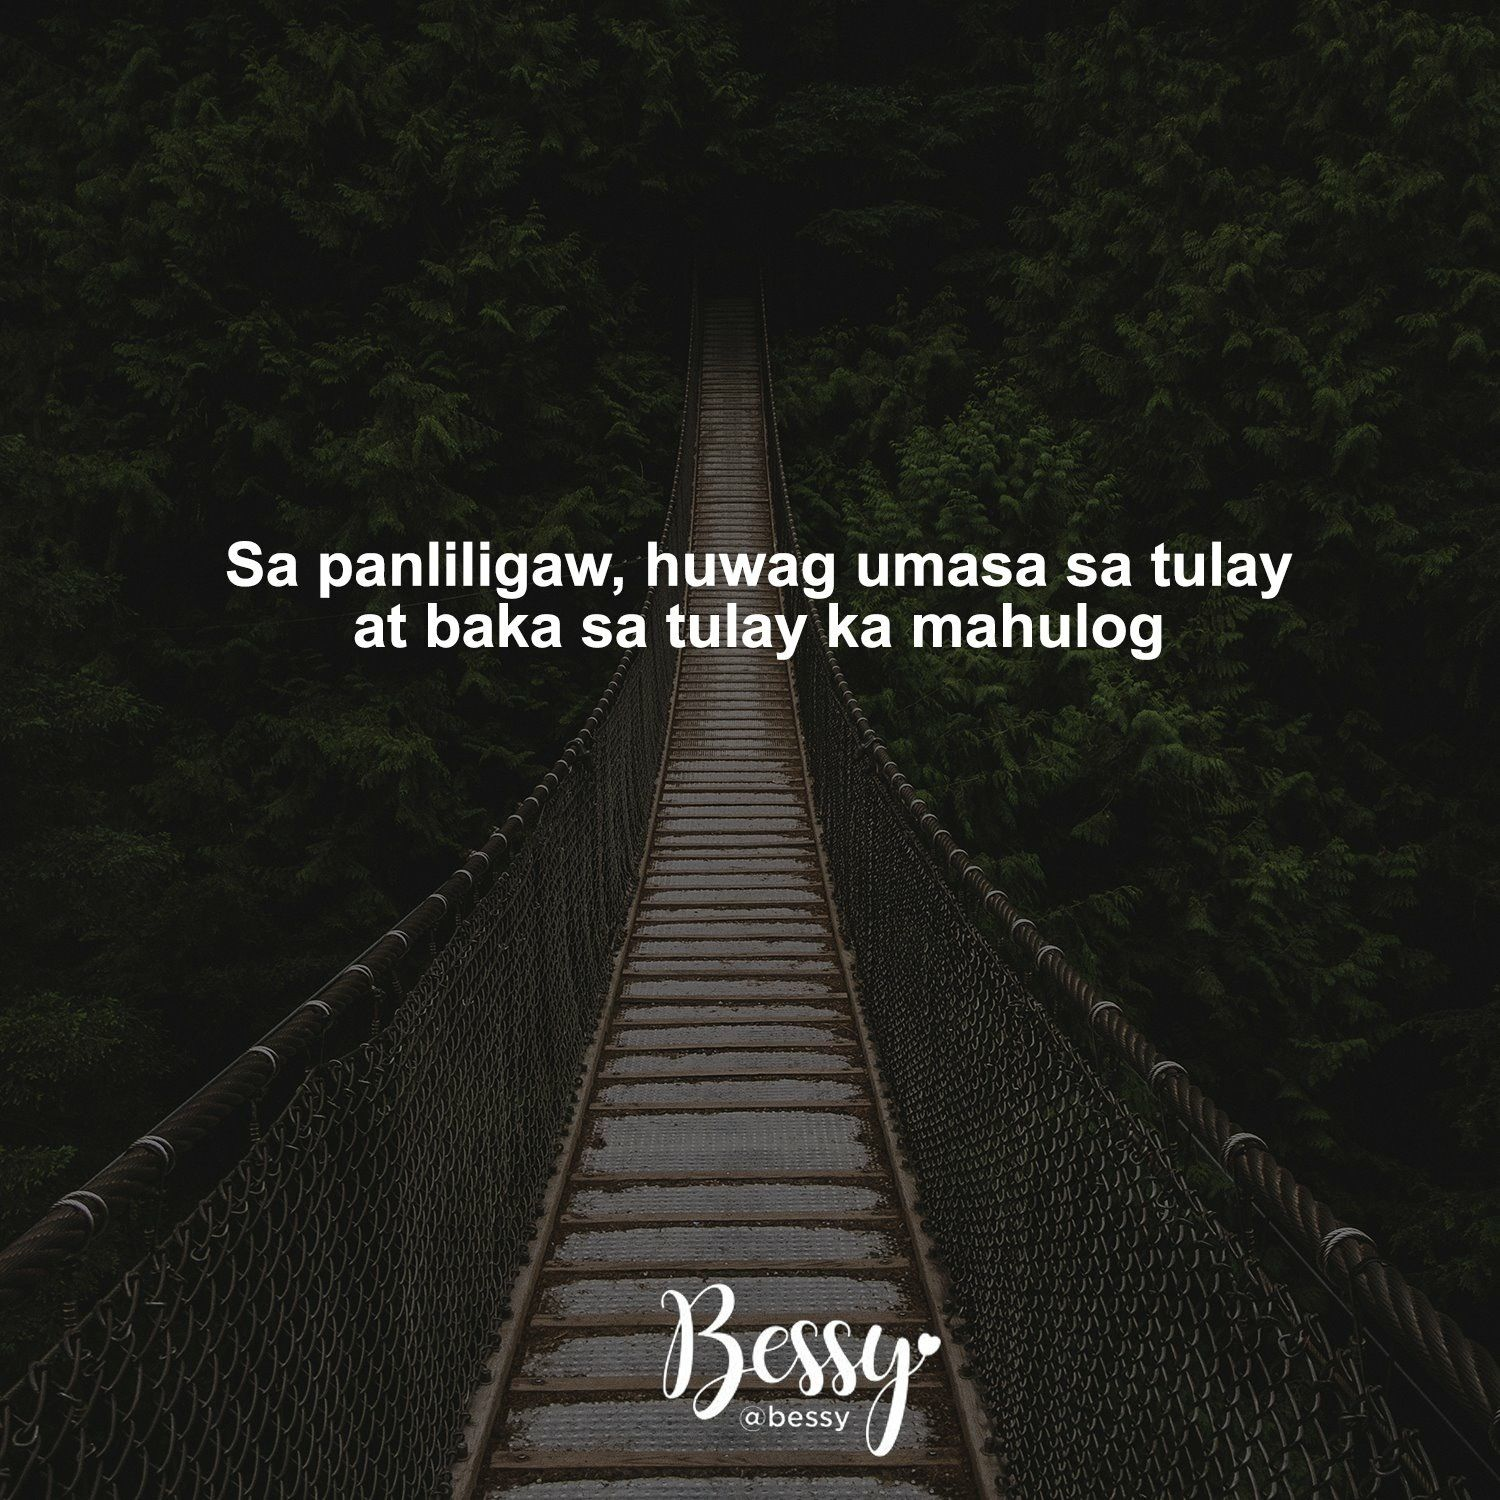 Pin By Colbyj On Hugot Pinoy Quotes Tagalog Quotes Hugot Quotes